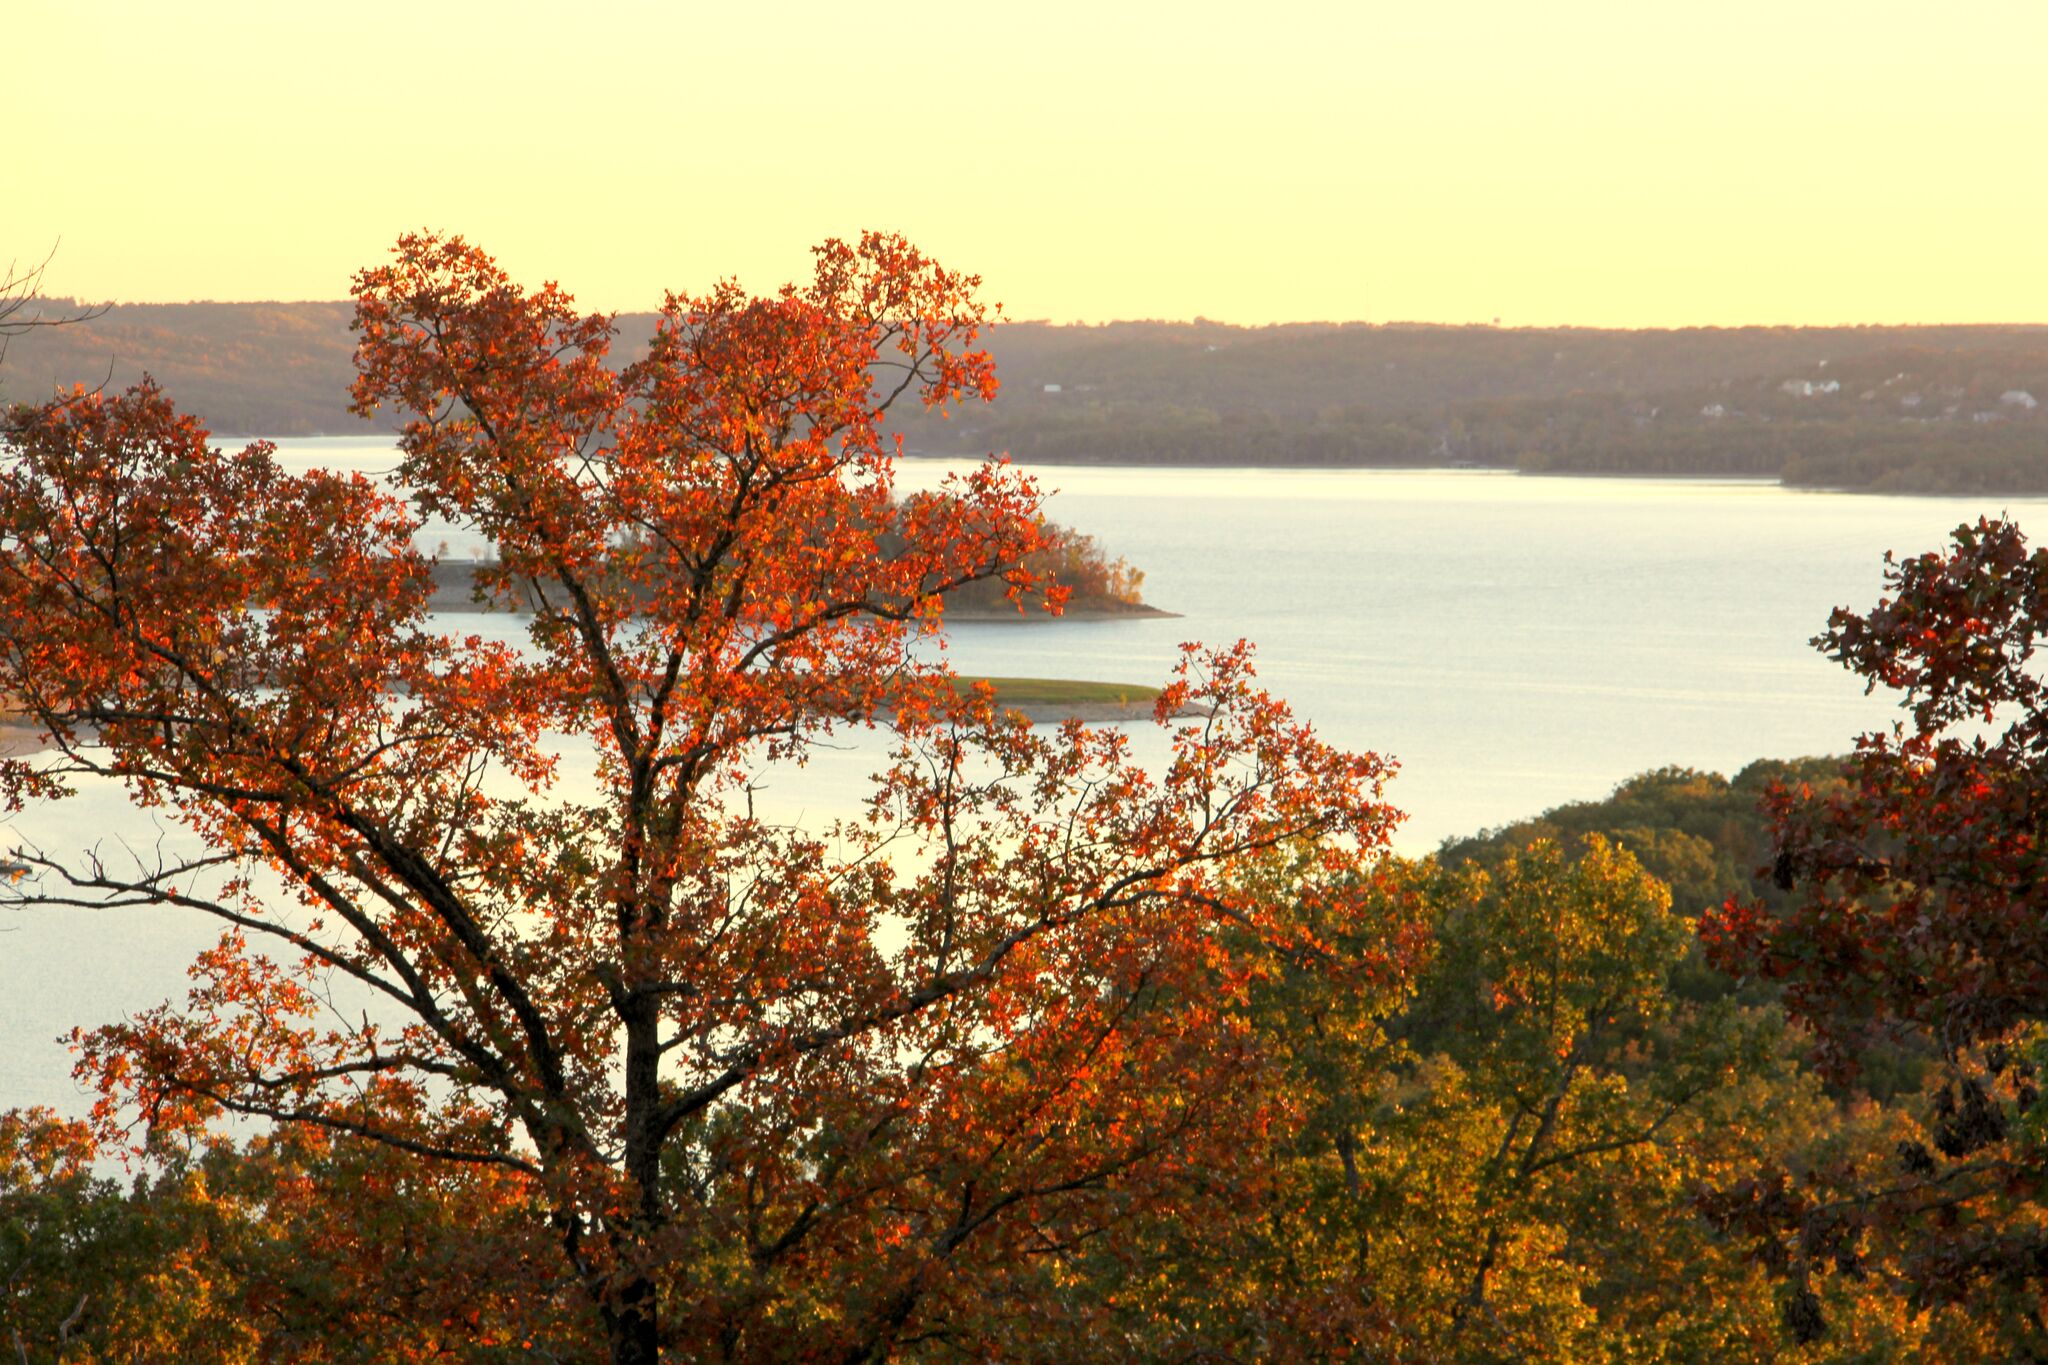 Ana Rock Follando fall events happening in the area - visit table rock lake